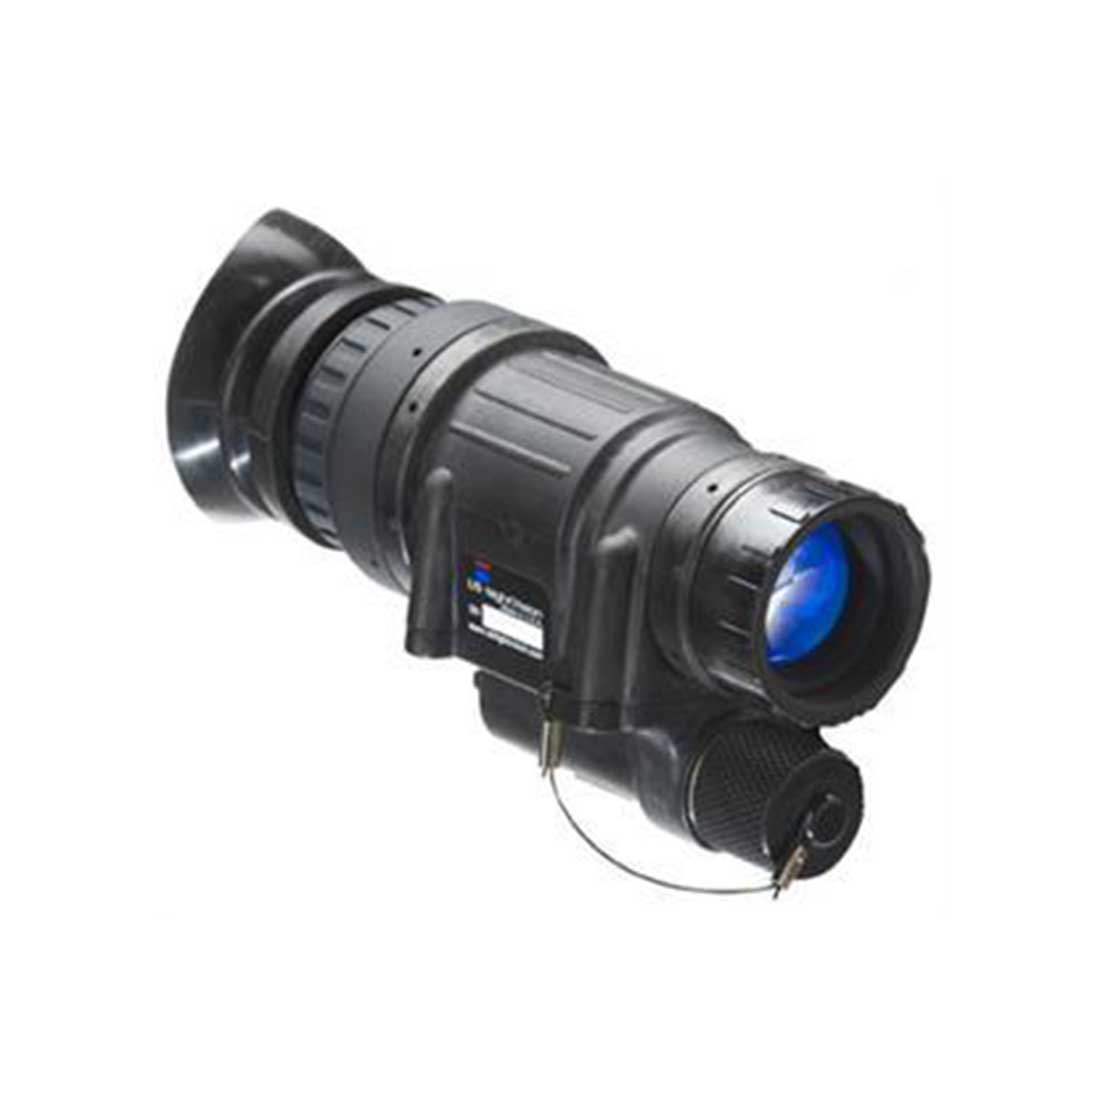 AN/PVS-14A Auto-Gated Pinnacle Monocular